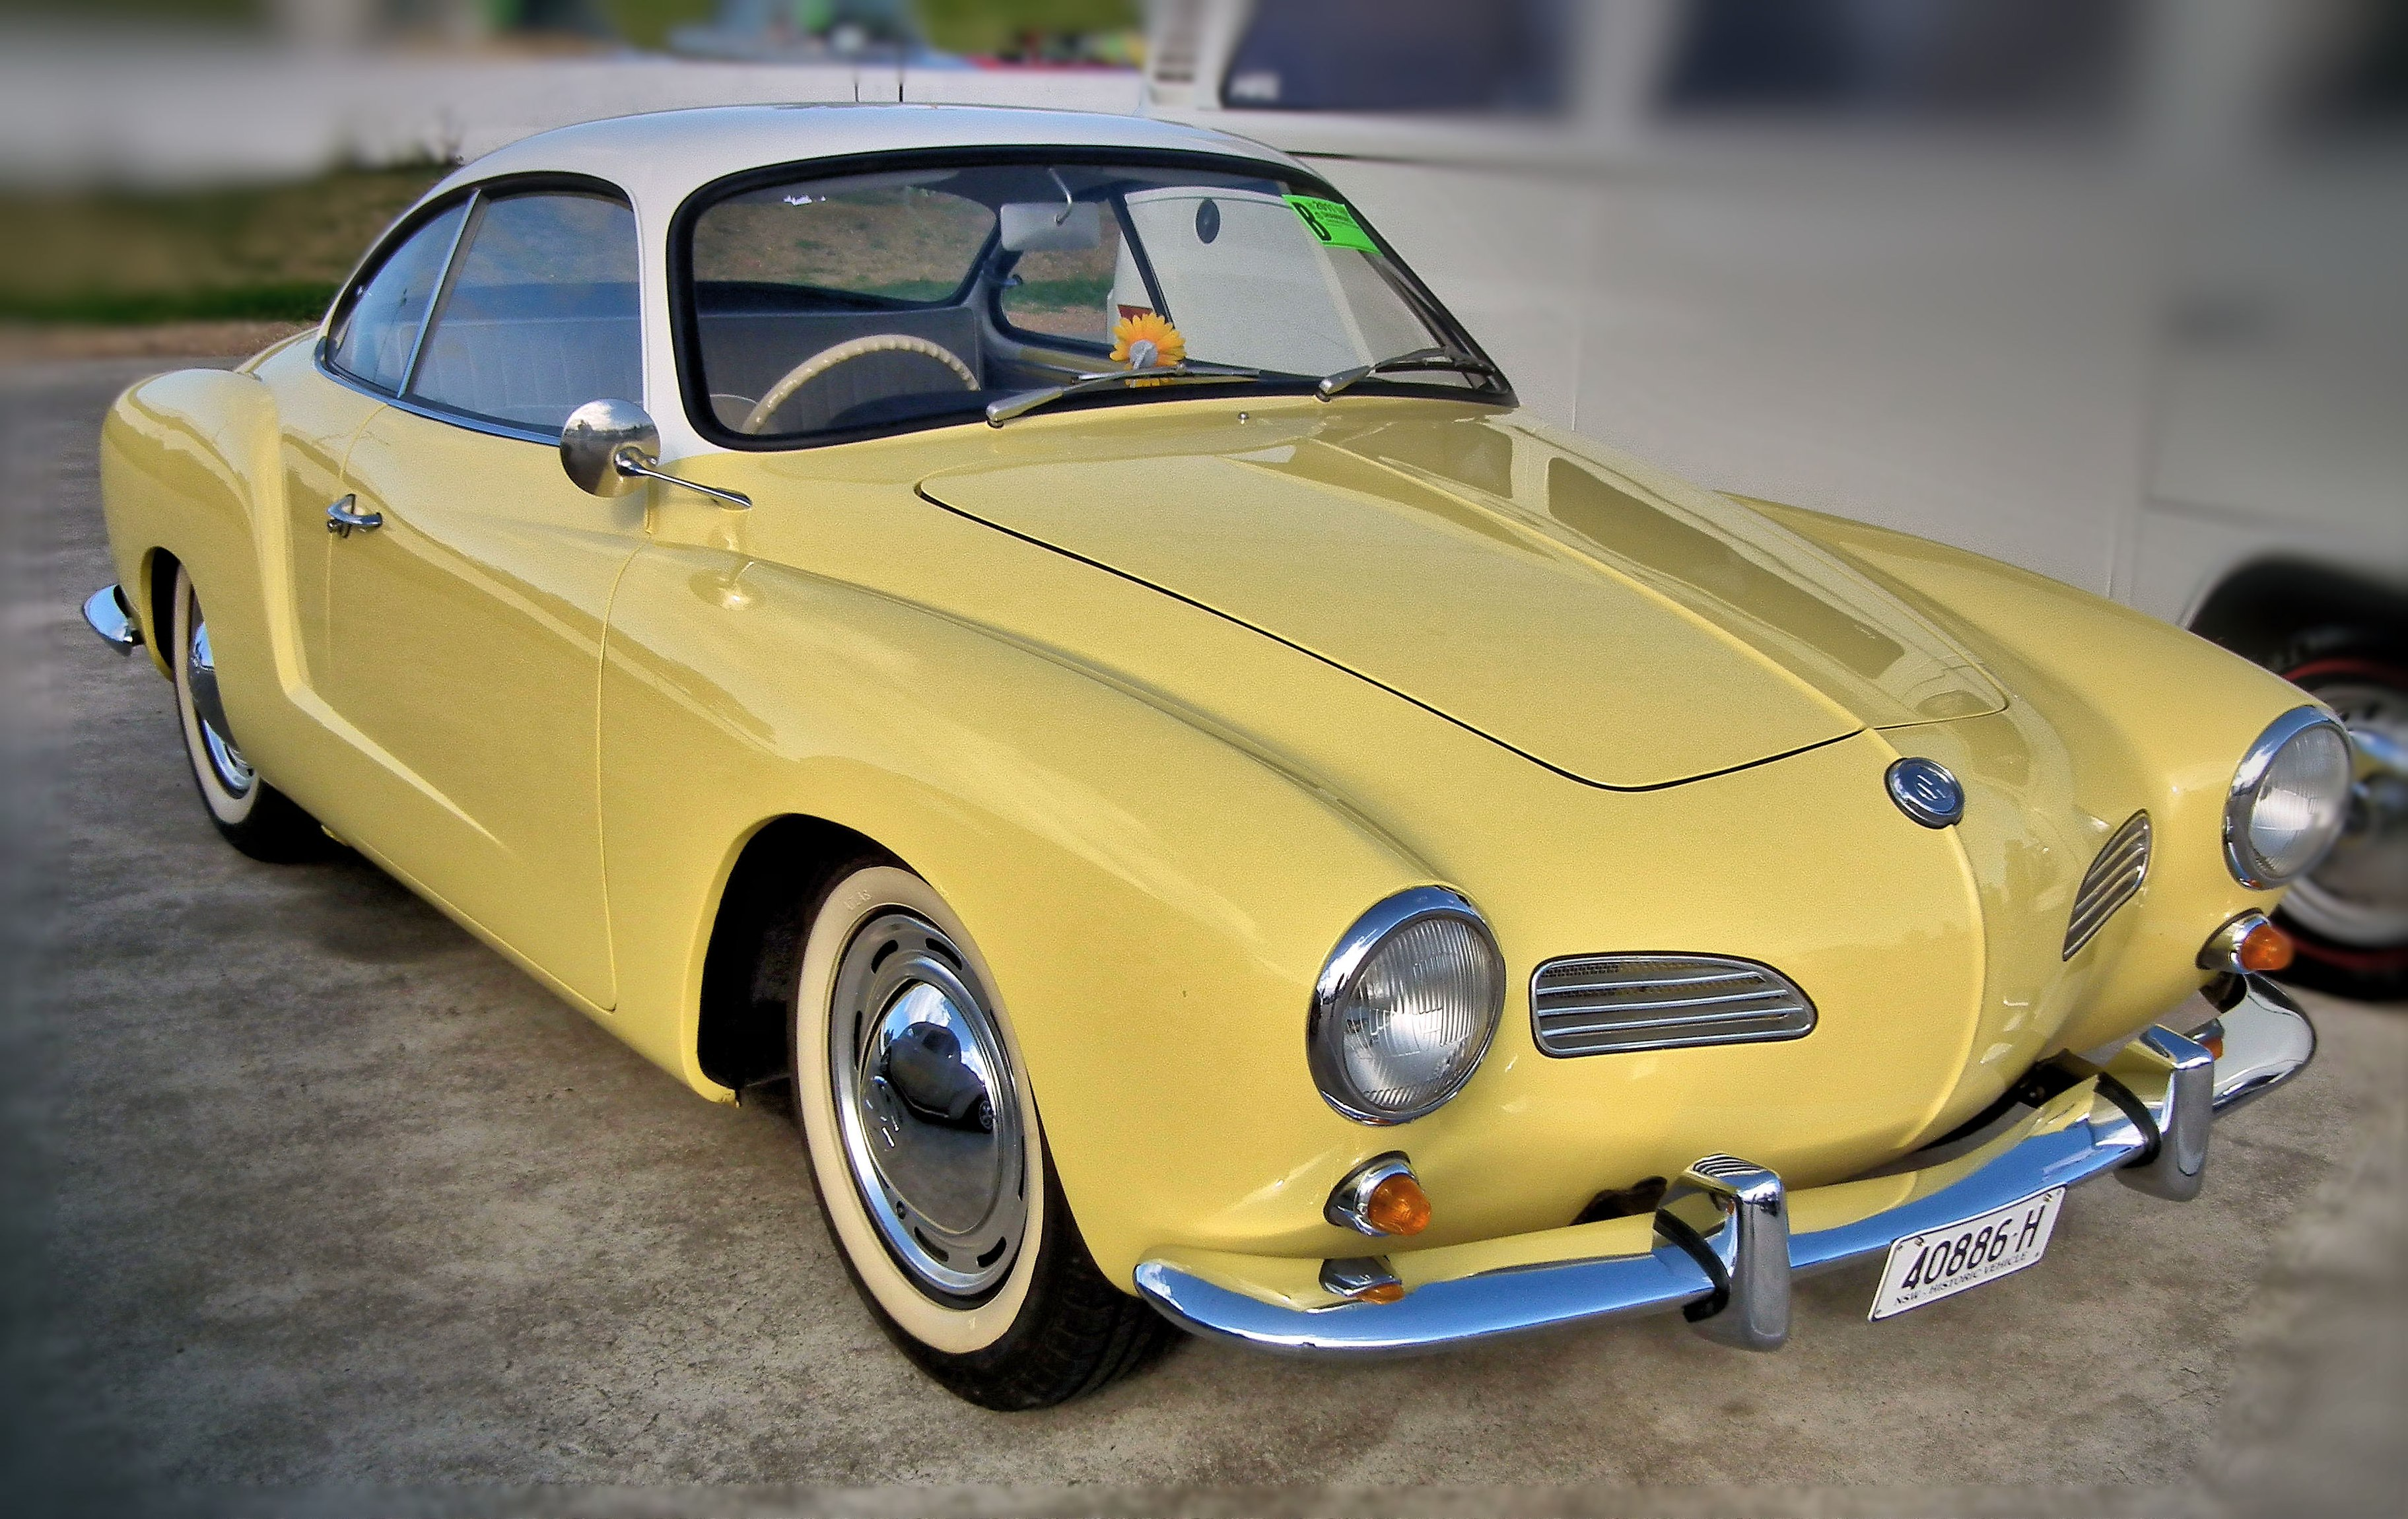 Karmann Ghia - The complete information and online sale with free shipping.  Order and buy now for the lowest price in the best online store! 2530c61f9f2b